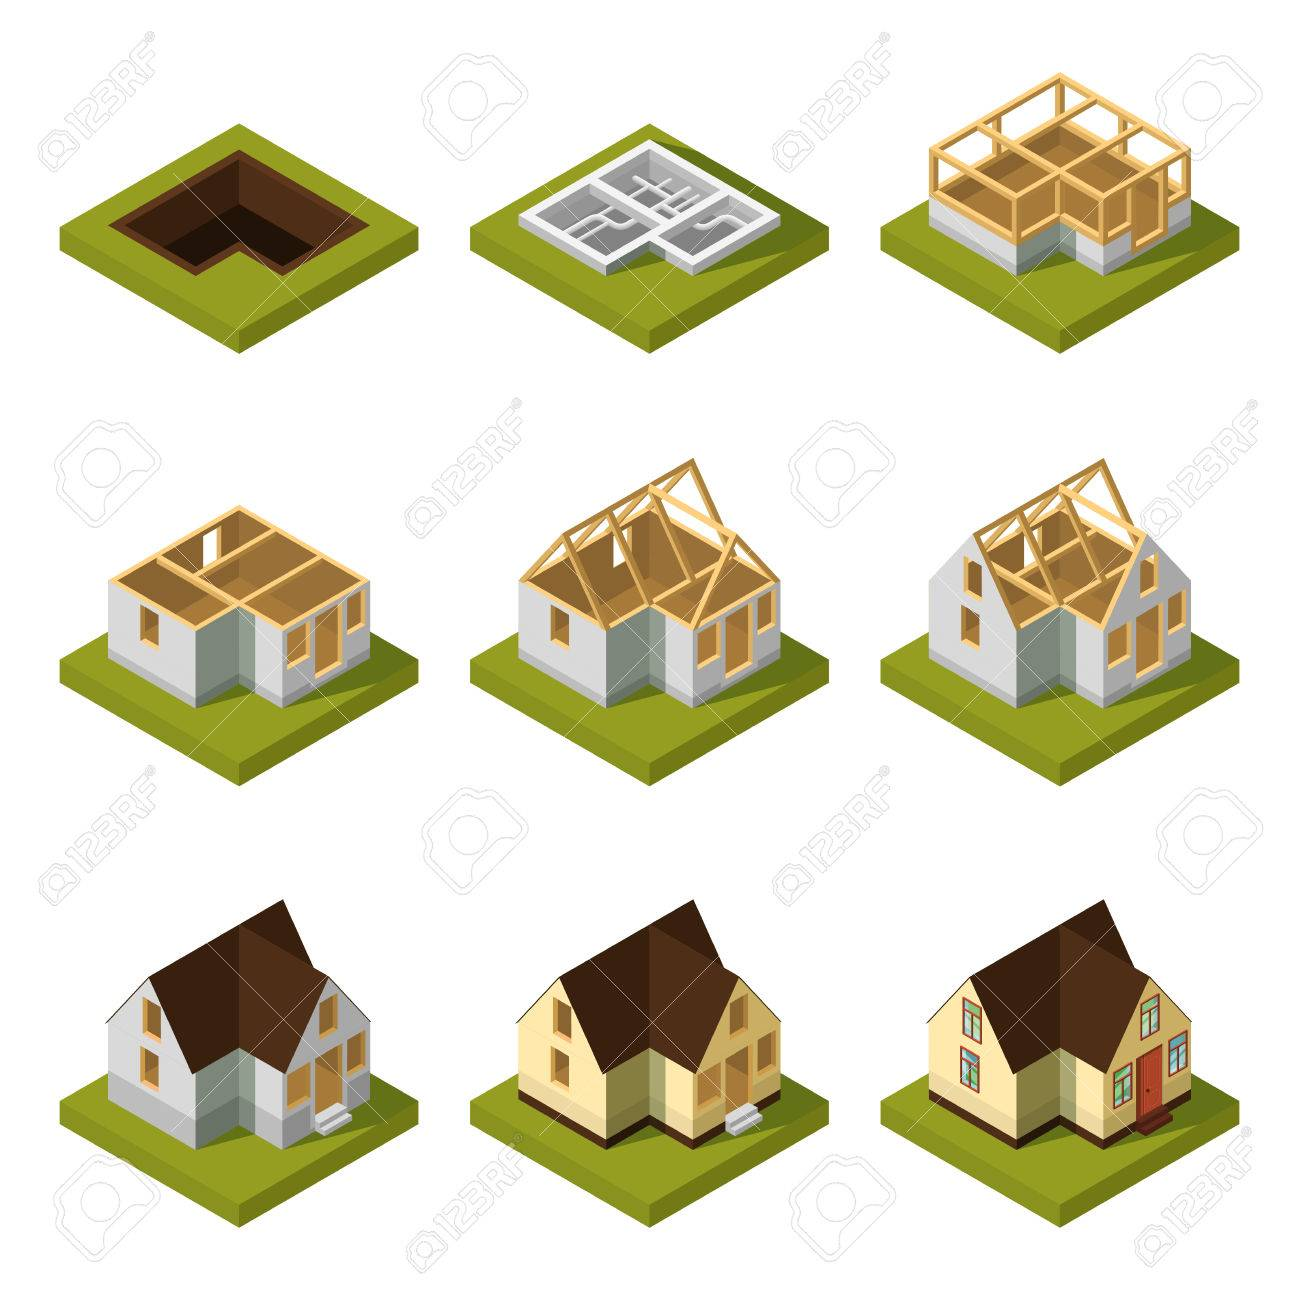 Delightful Vector   Visualization Of Modern Building On Different Construction Stages.  Isometric Construction Urban Building House Vector Illustration